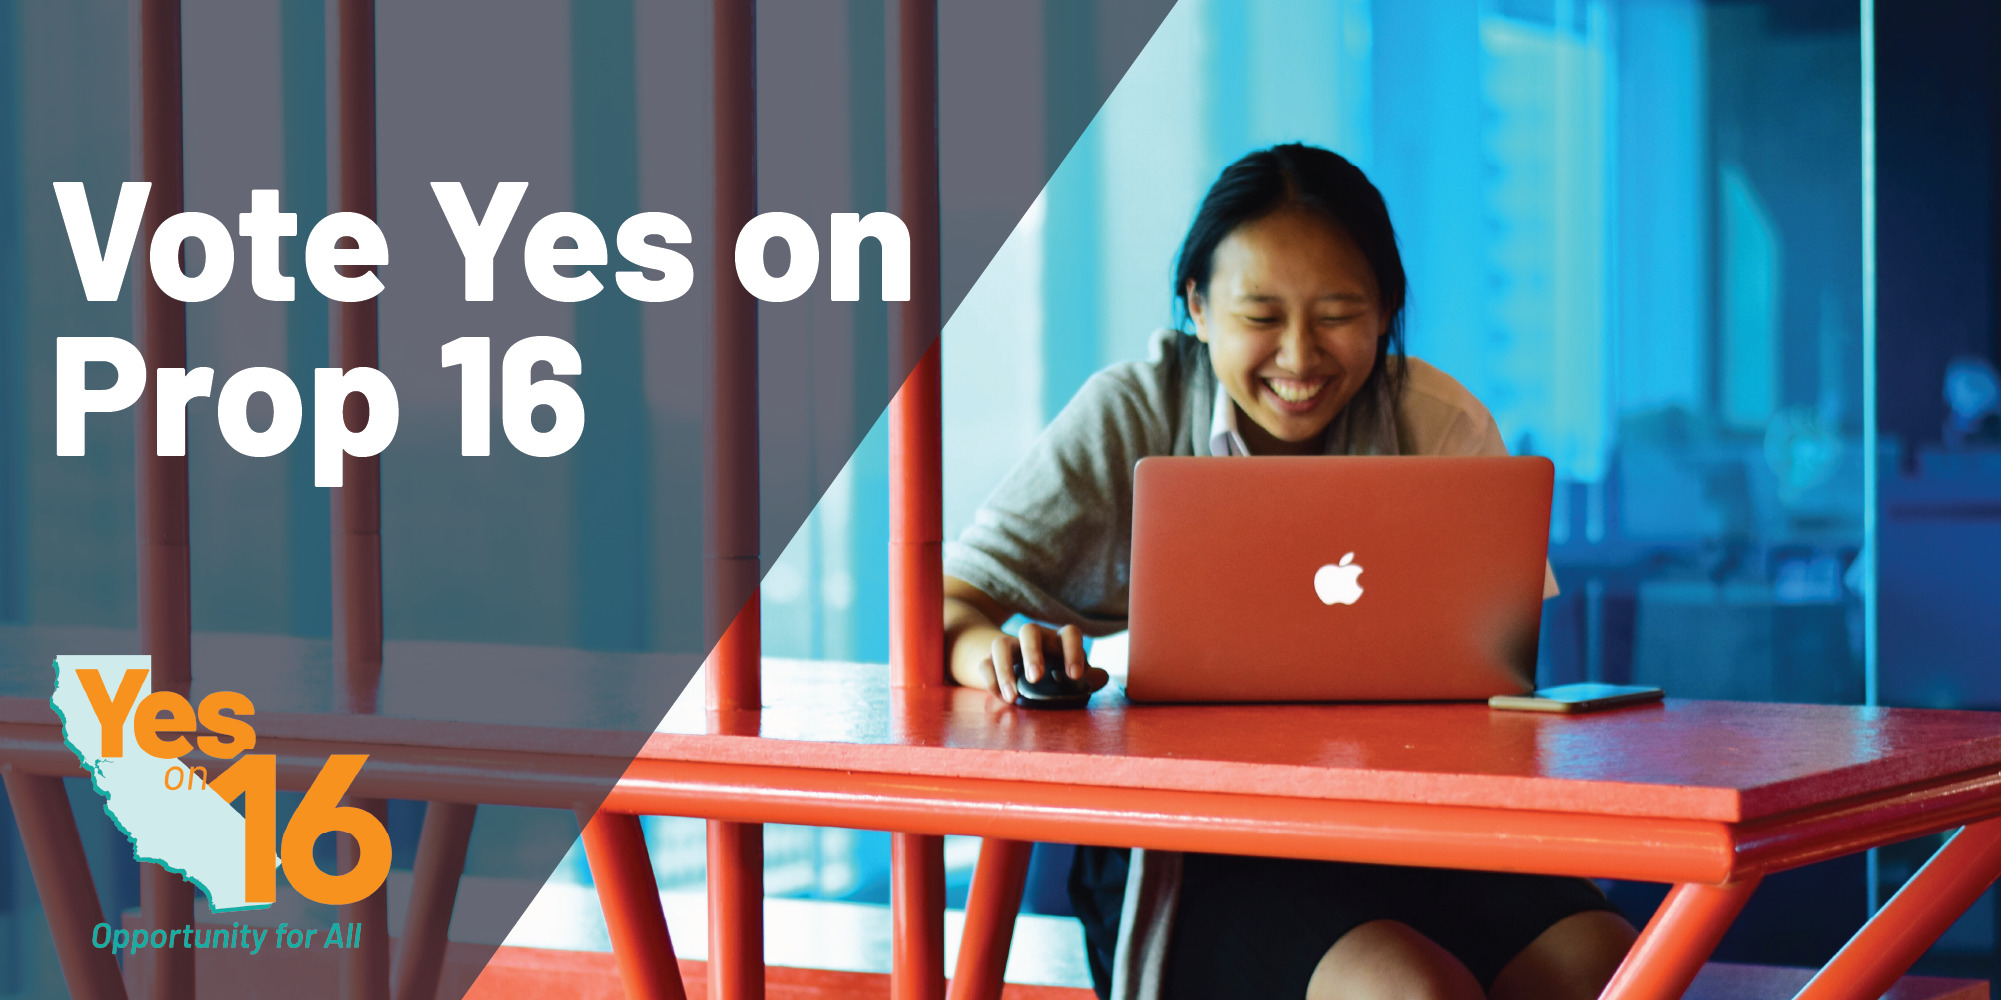 Headline: Vote Yes on Prop 16. A young, female-presenting AAPI student l types happily on their laptop.